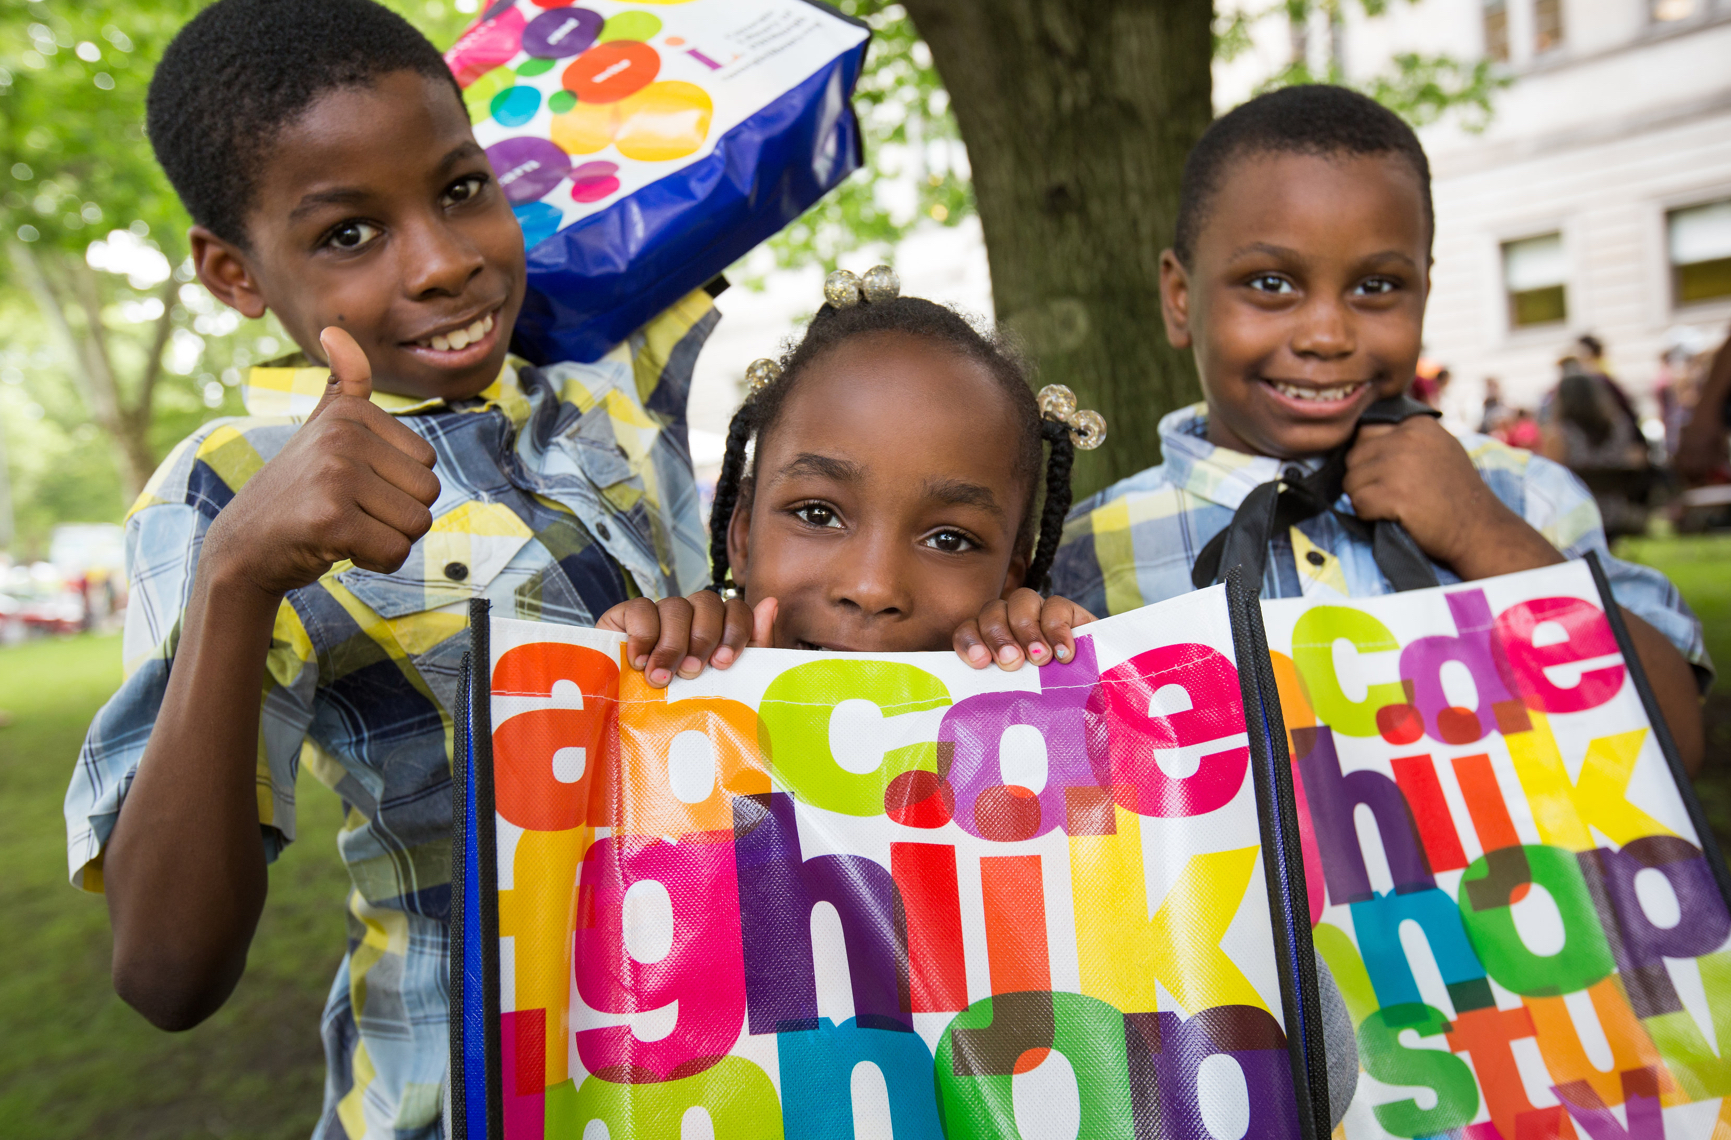 Three school children outside Carnegie Library of Pittsburgh, smiling and holding bags with colorful alphabet letters on them.